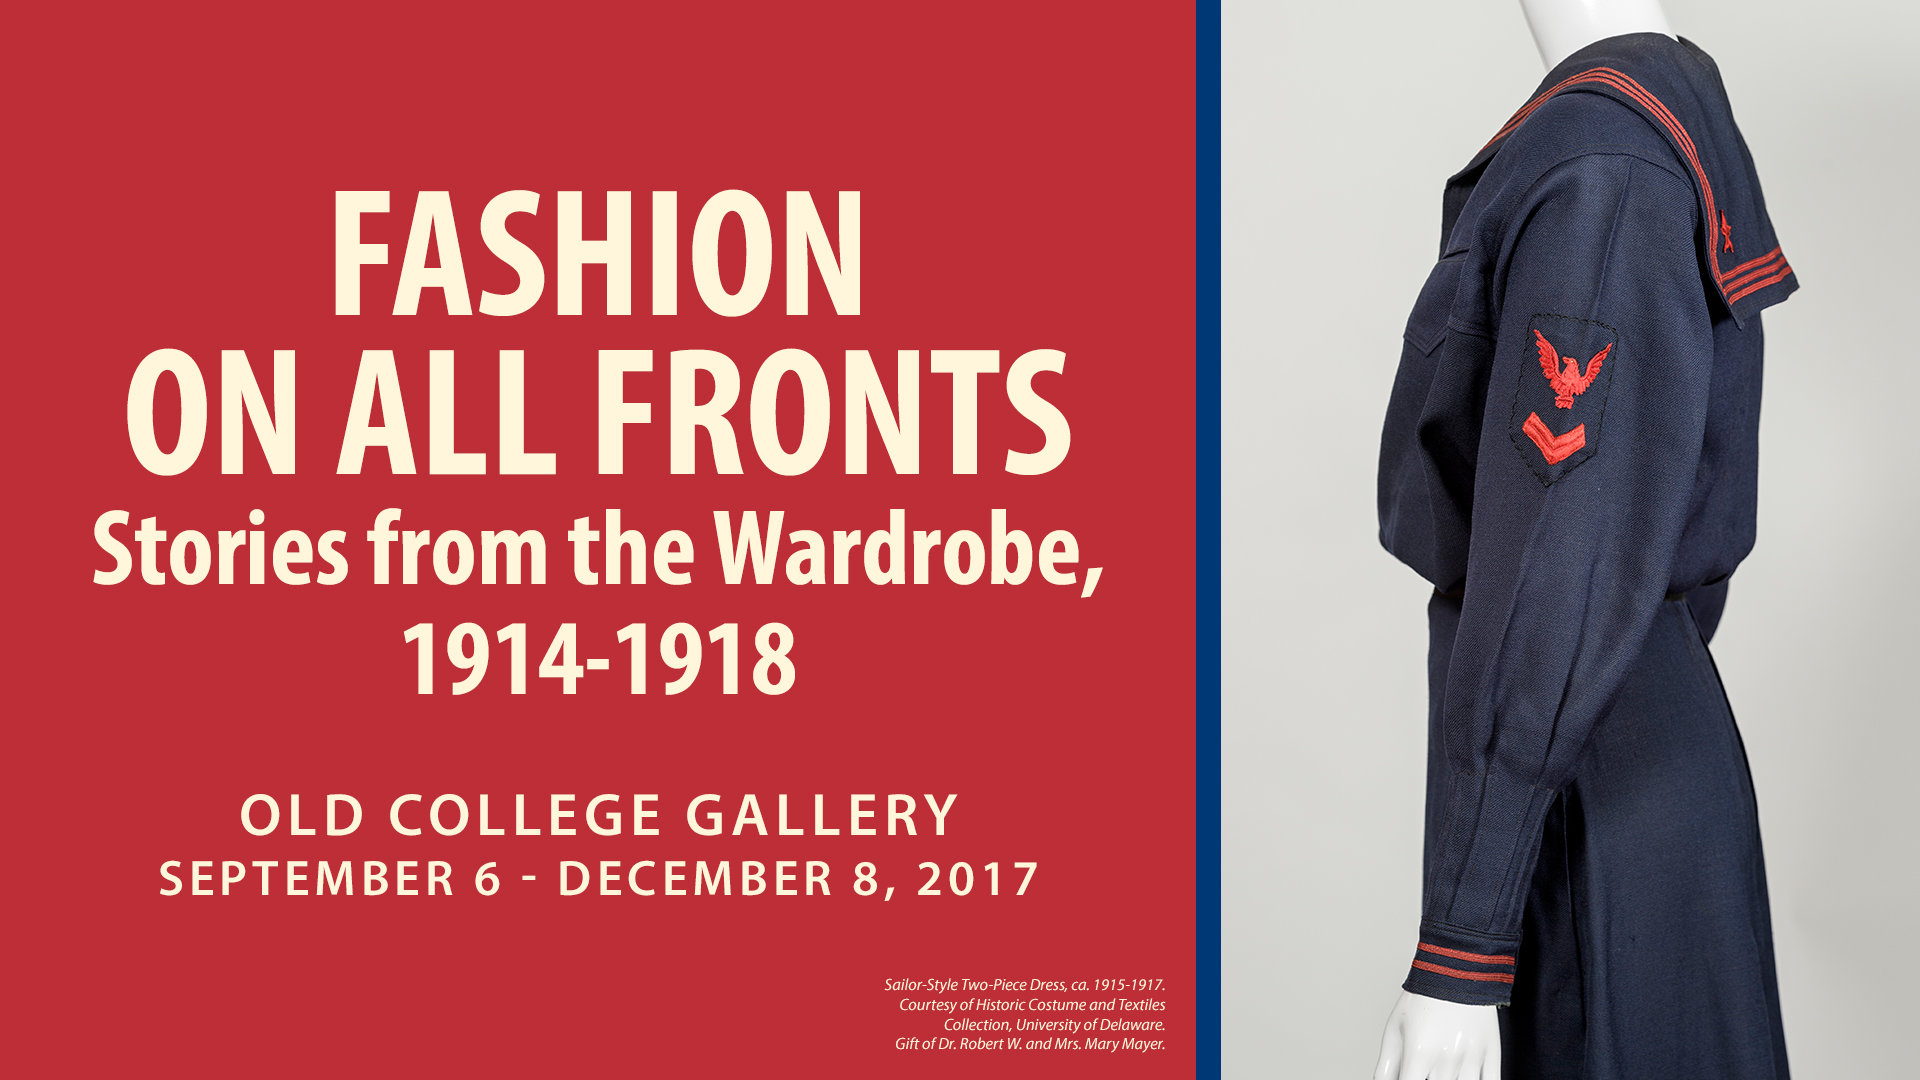 Fashion on All Fronts: Stories from the Wardrobe, 1914-1918